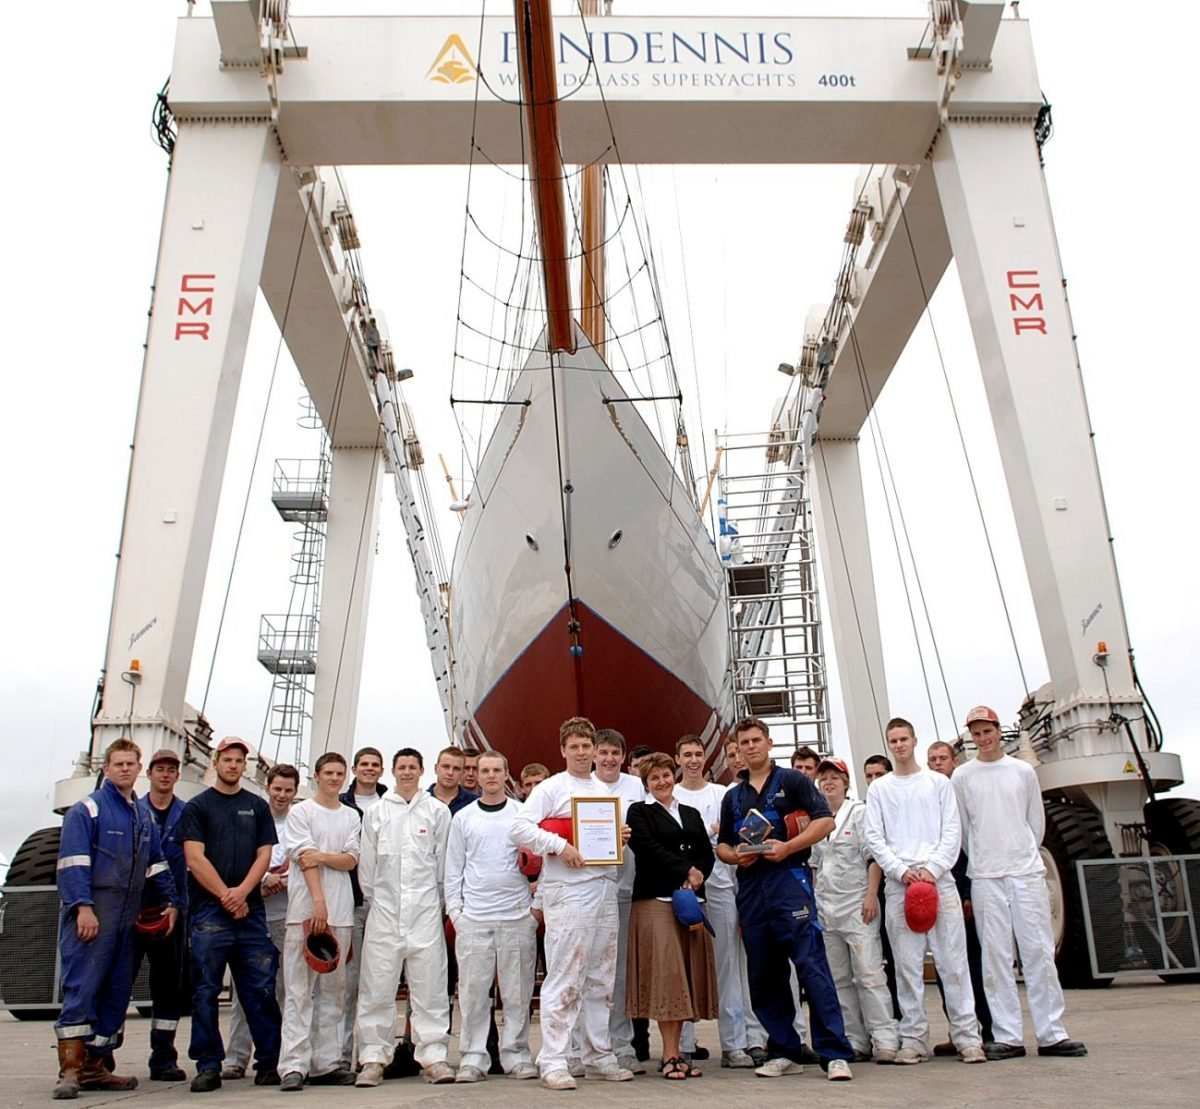 Group of Pendennis Shipyard apprentices stood in front of large yacht